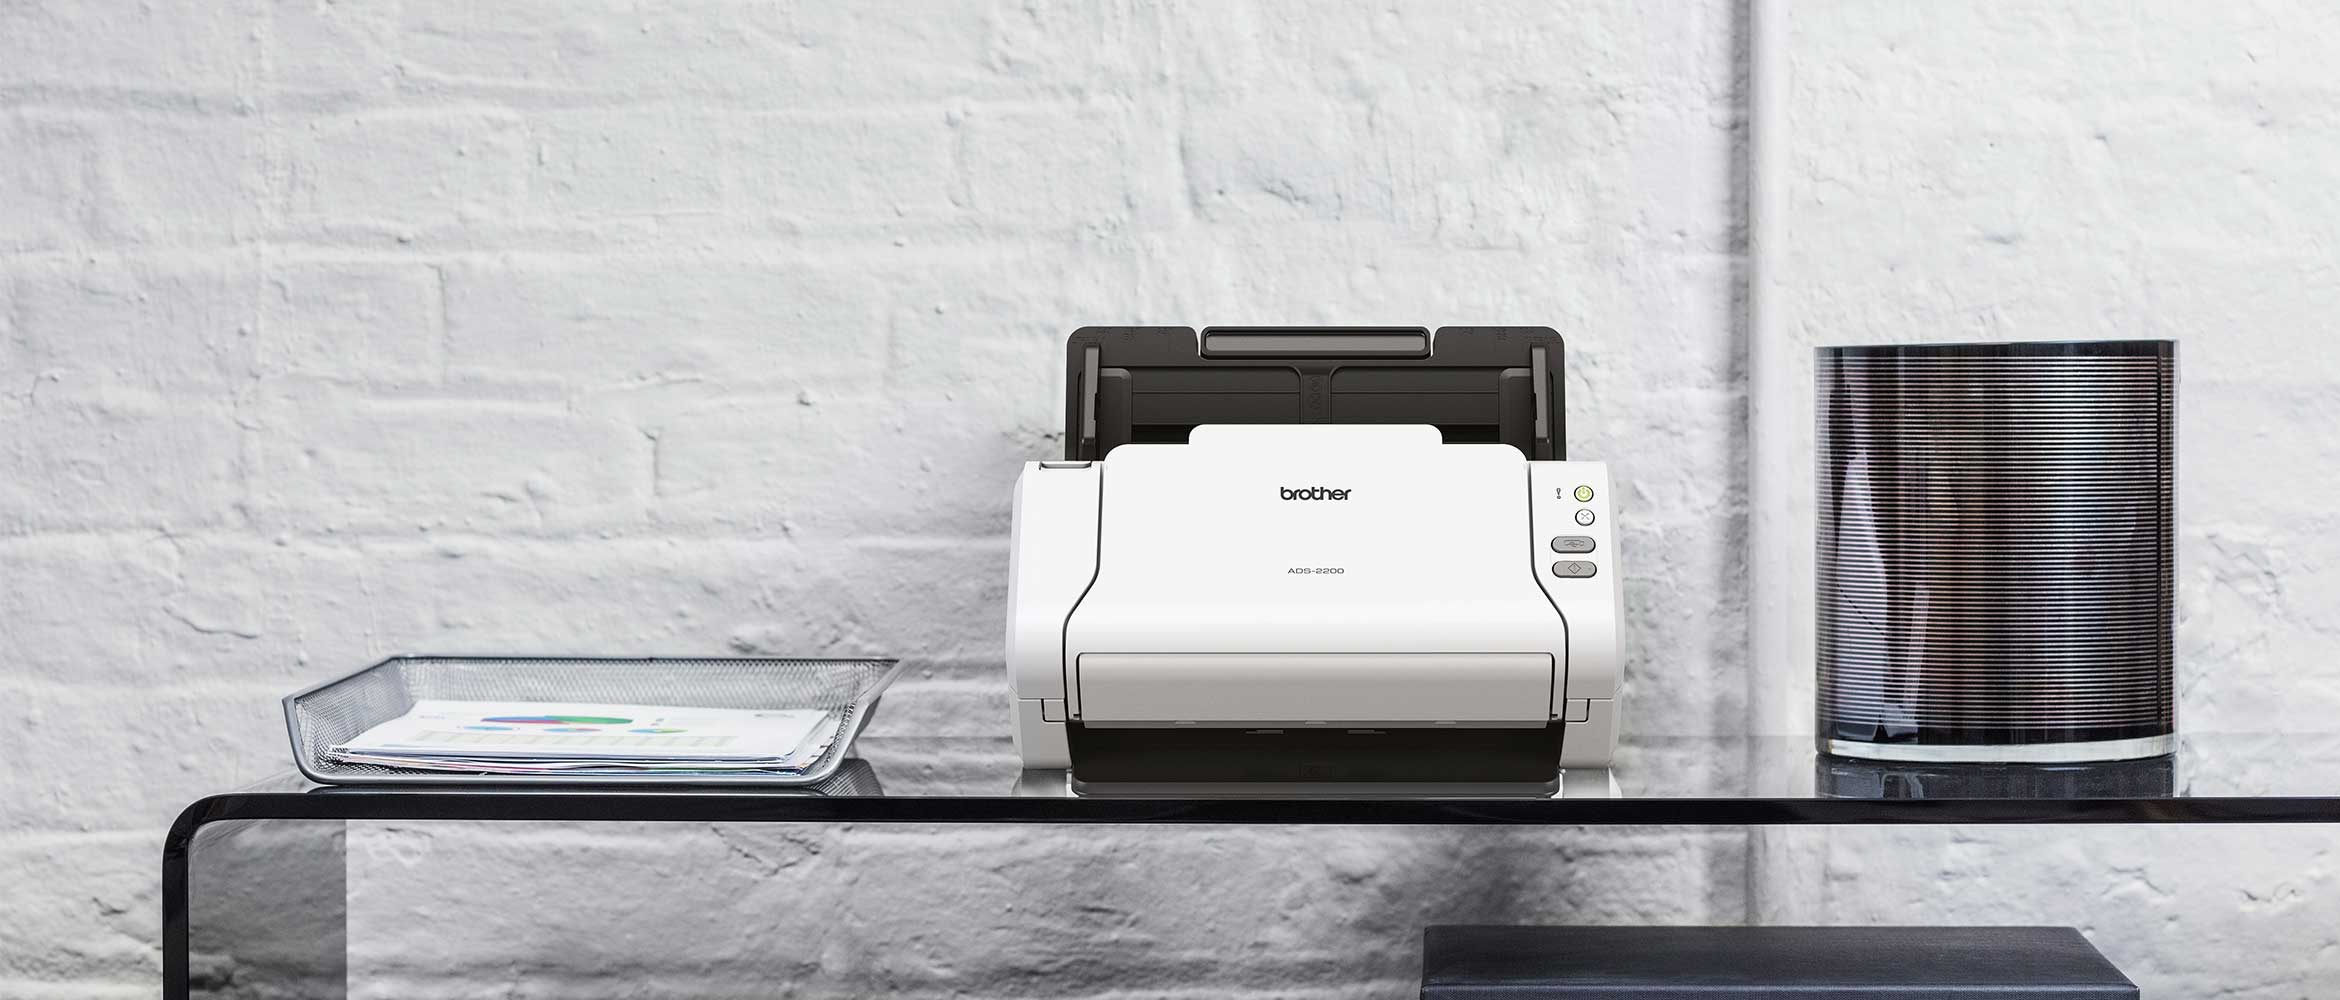 scanner desktop Brother ADS-2200 su tavolo di vetro con bordo curvo